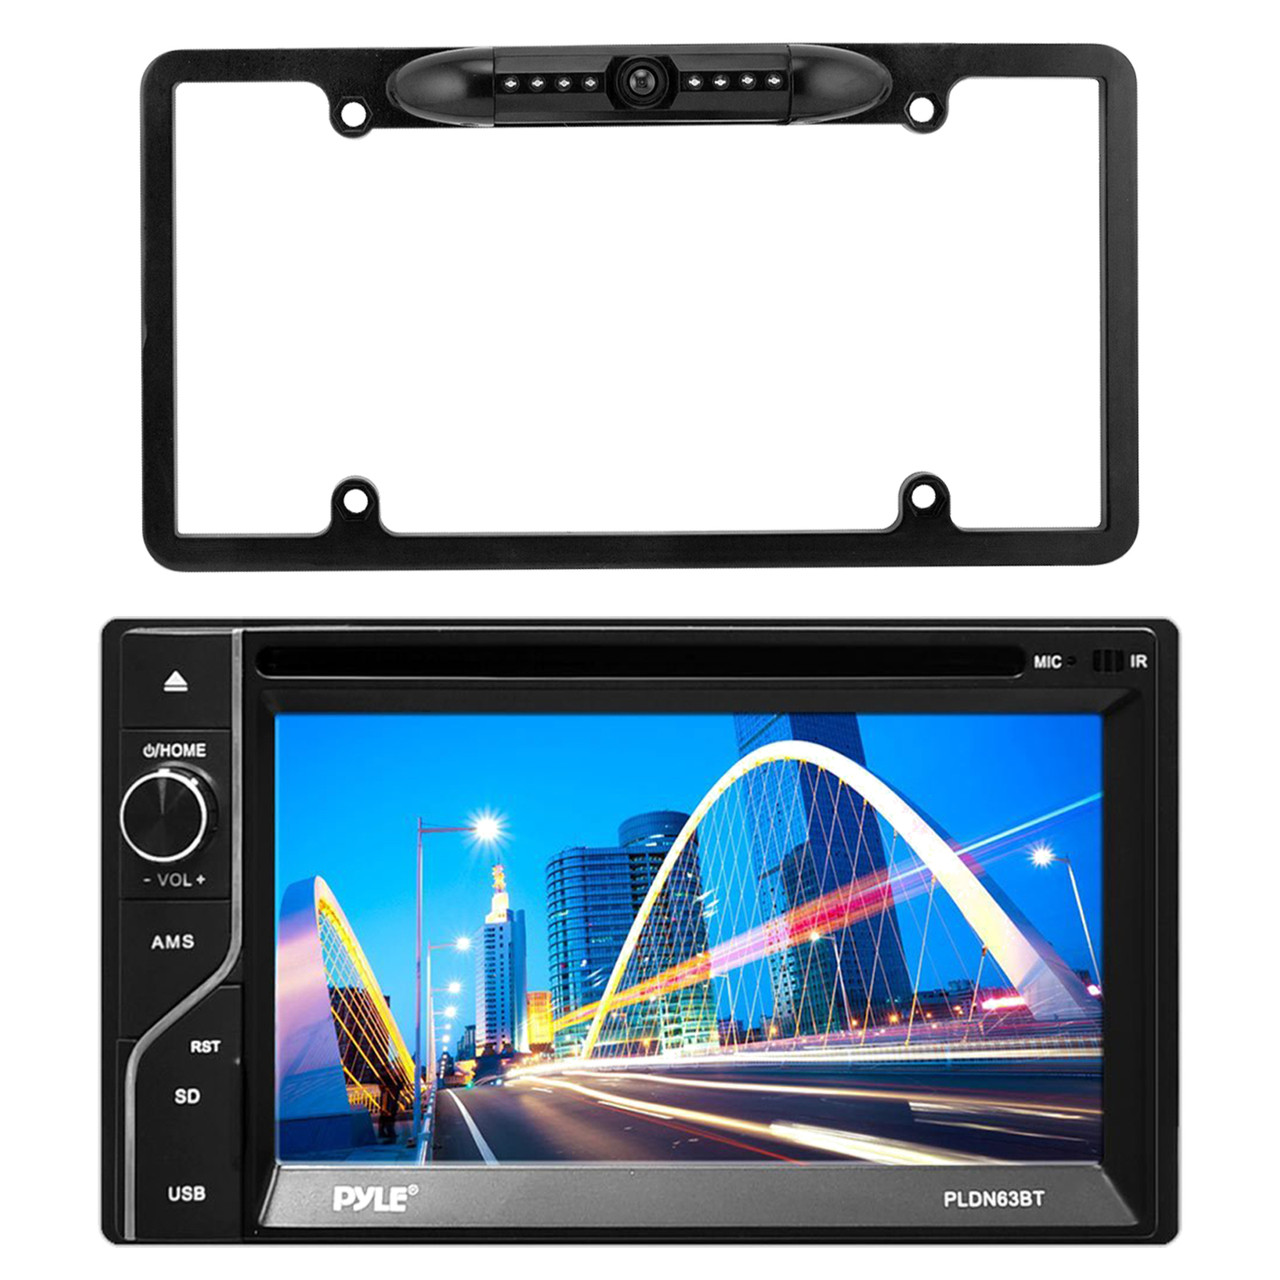 Enrock EABC256B Car License Plate Frame Rear View Backup Night Vision Waterproof Camera with Parking Assist /& Distance Scale Lines